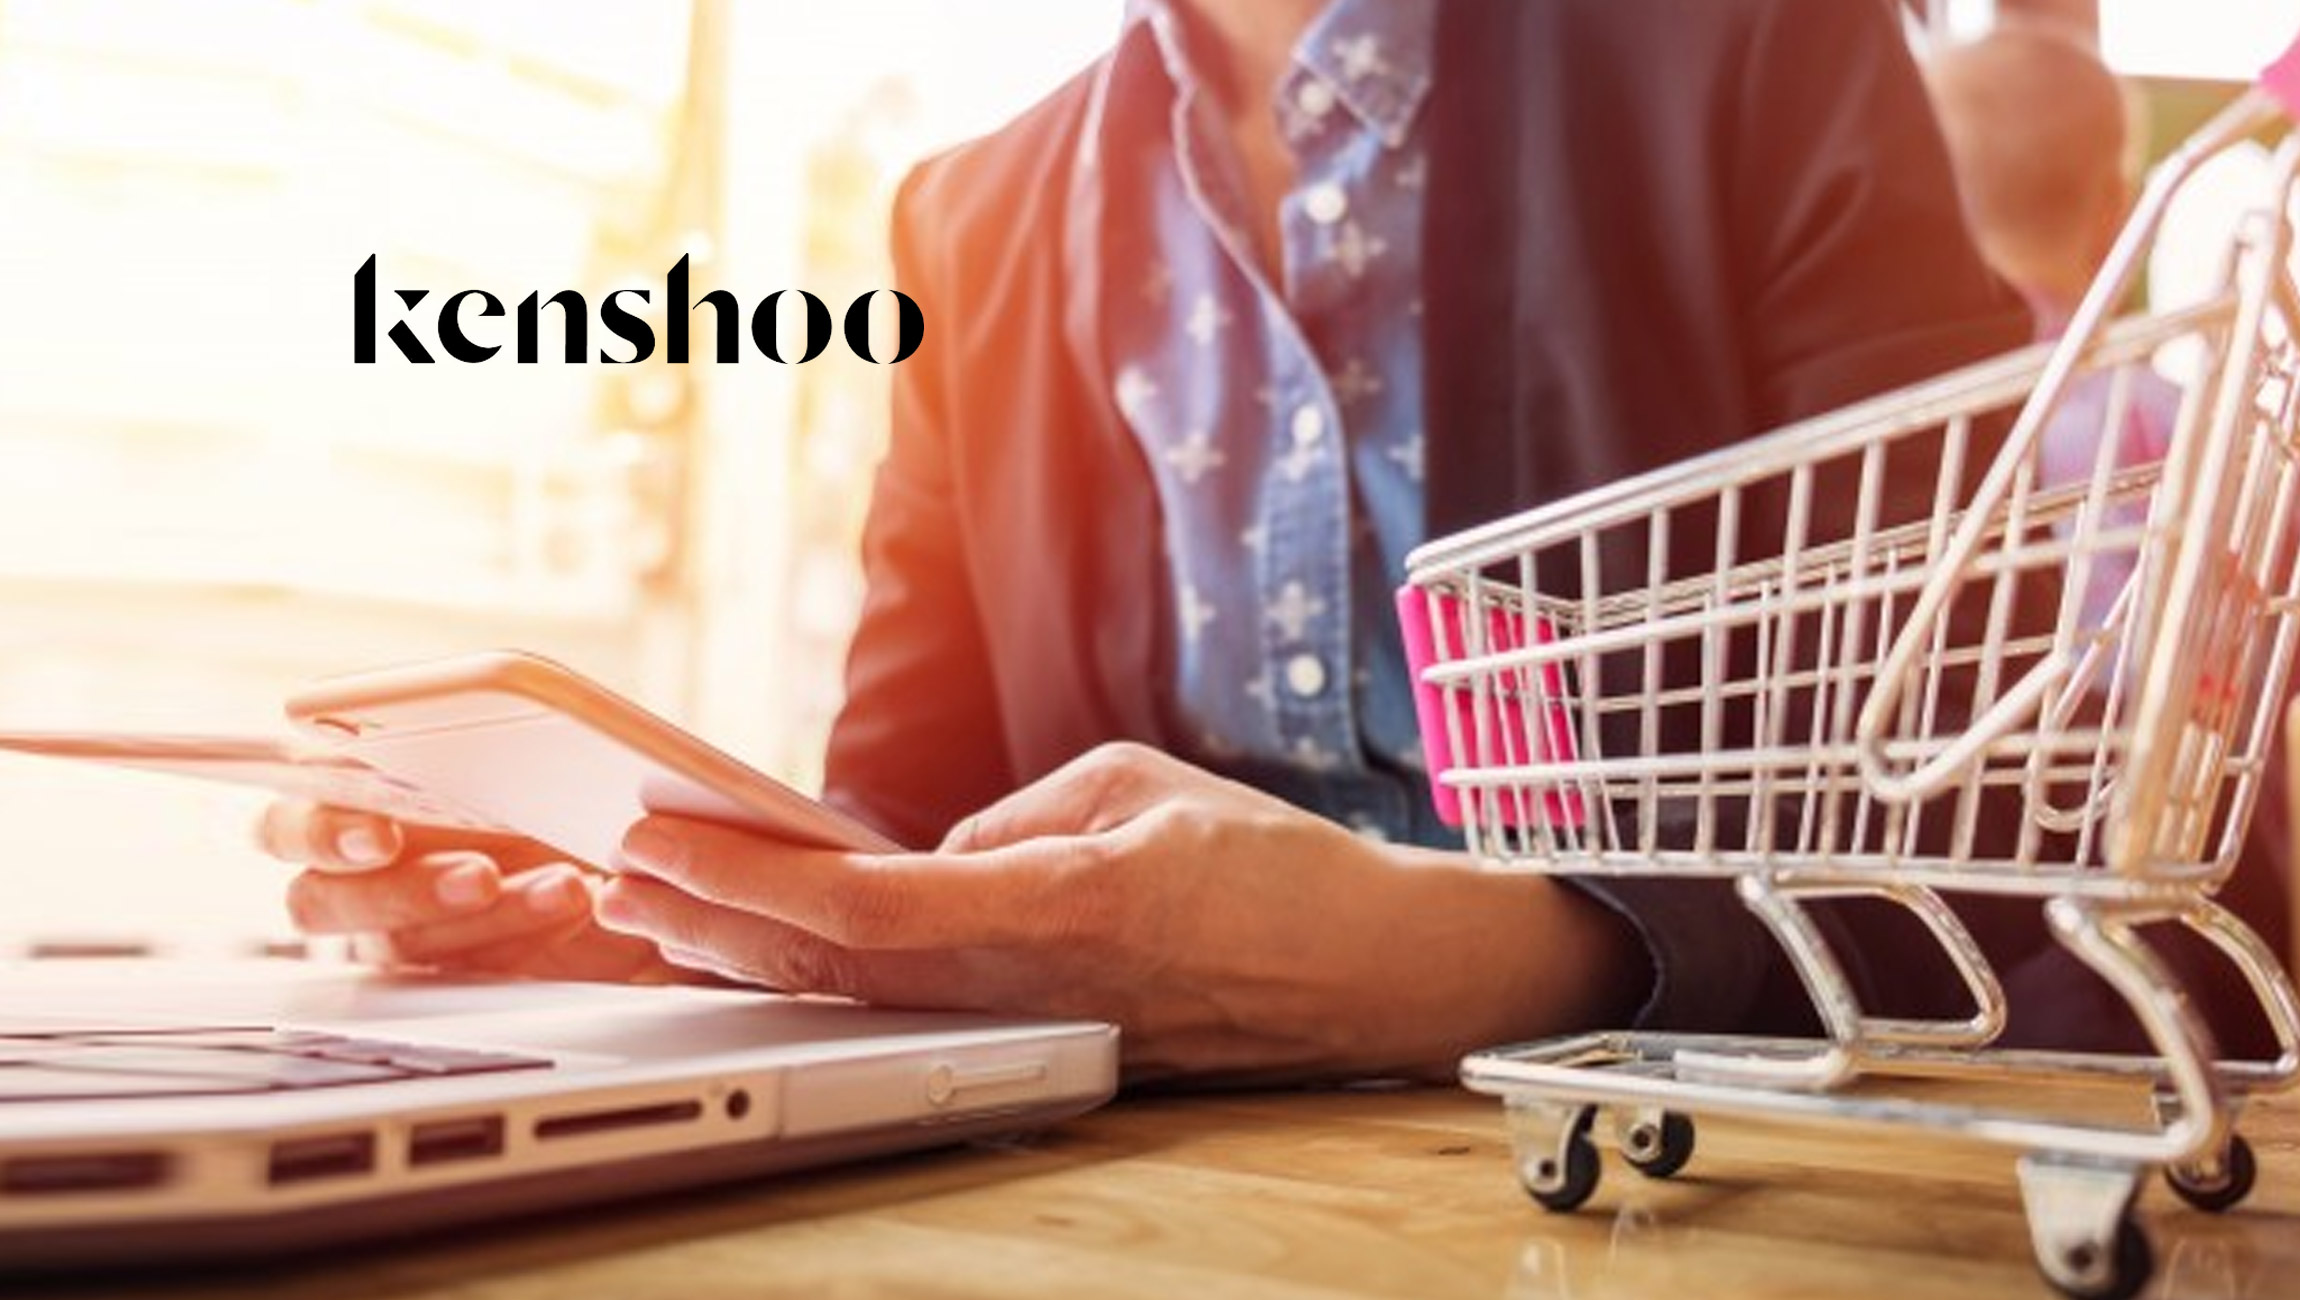 Acceleration of Online Shopping in 2020 Yielded Robust Growth Across Digital Channels in the First Quarter of This Year, Kenshoo Report Reveals